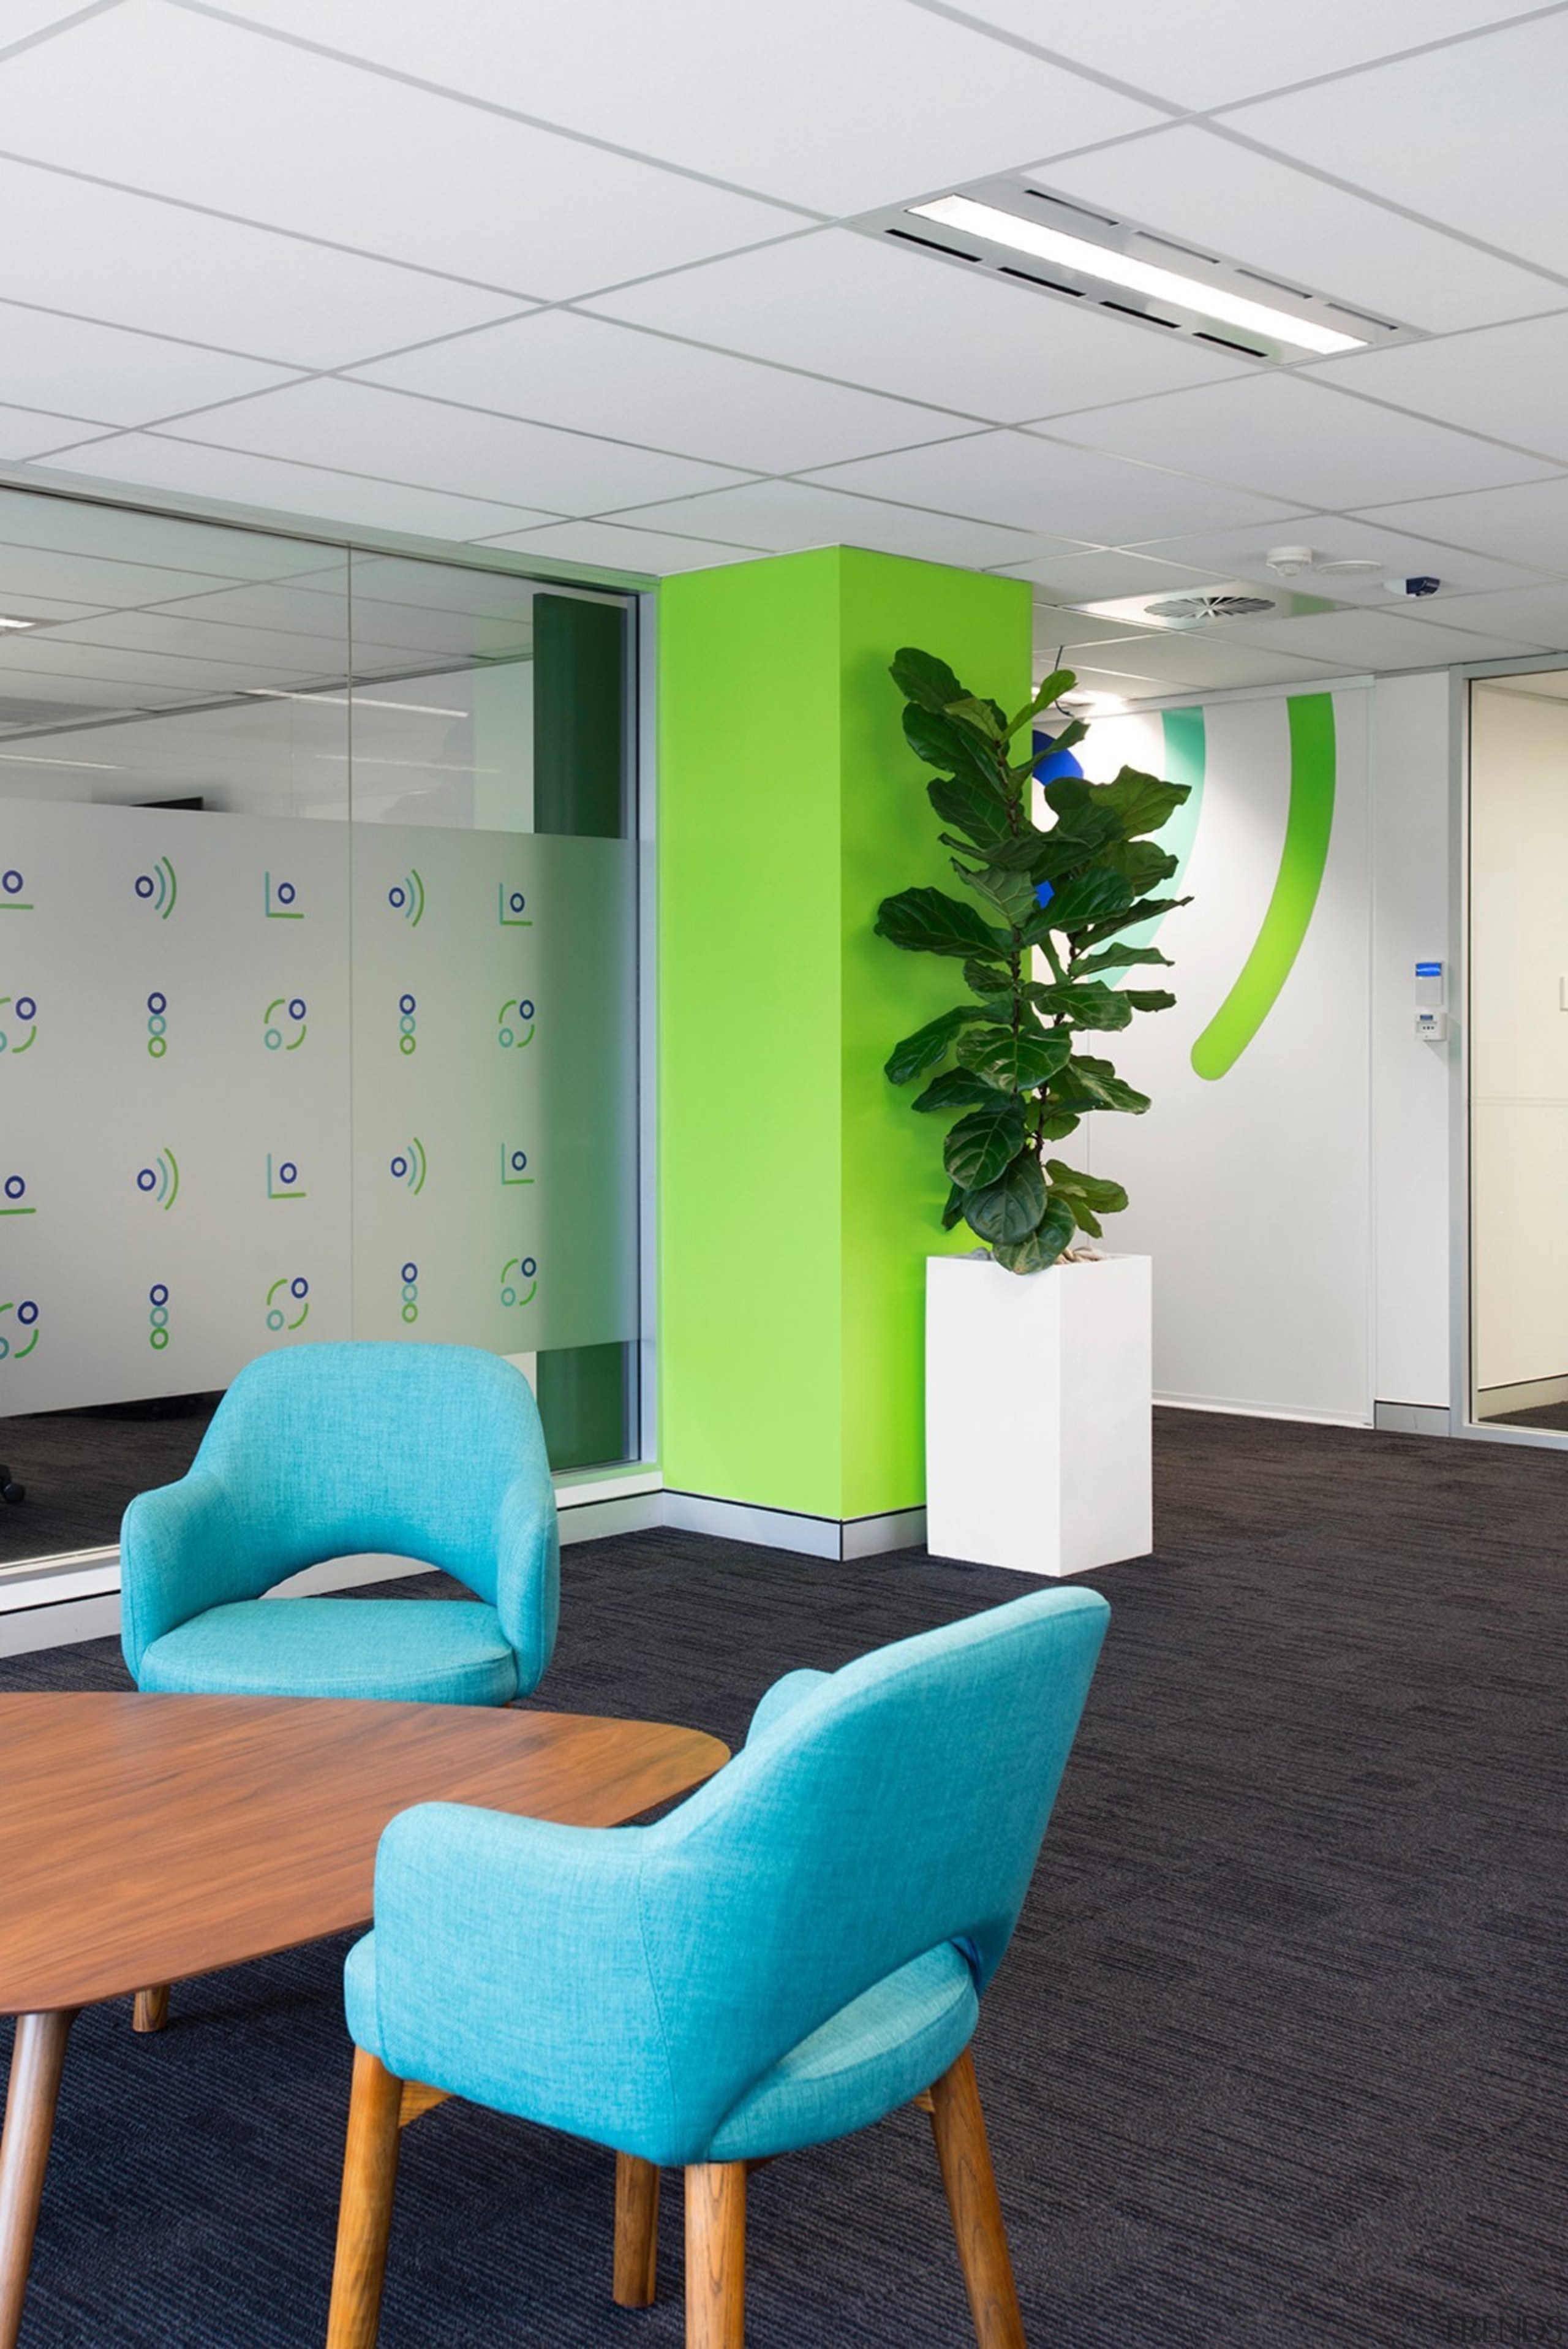 Plant, meet green pillar - Plant, meet green ceiling, furniture, interior design, office, product design, table, wall, white